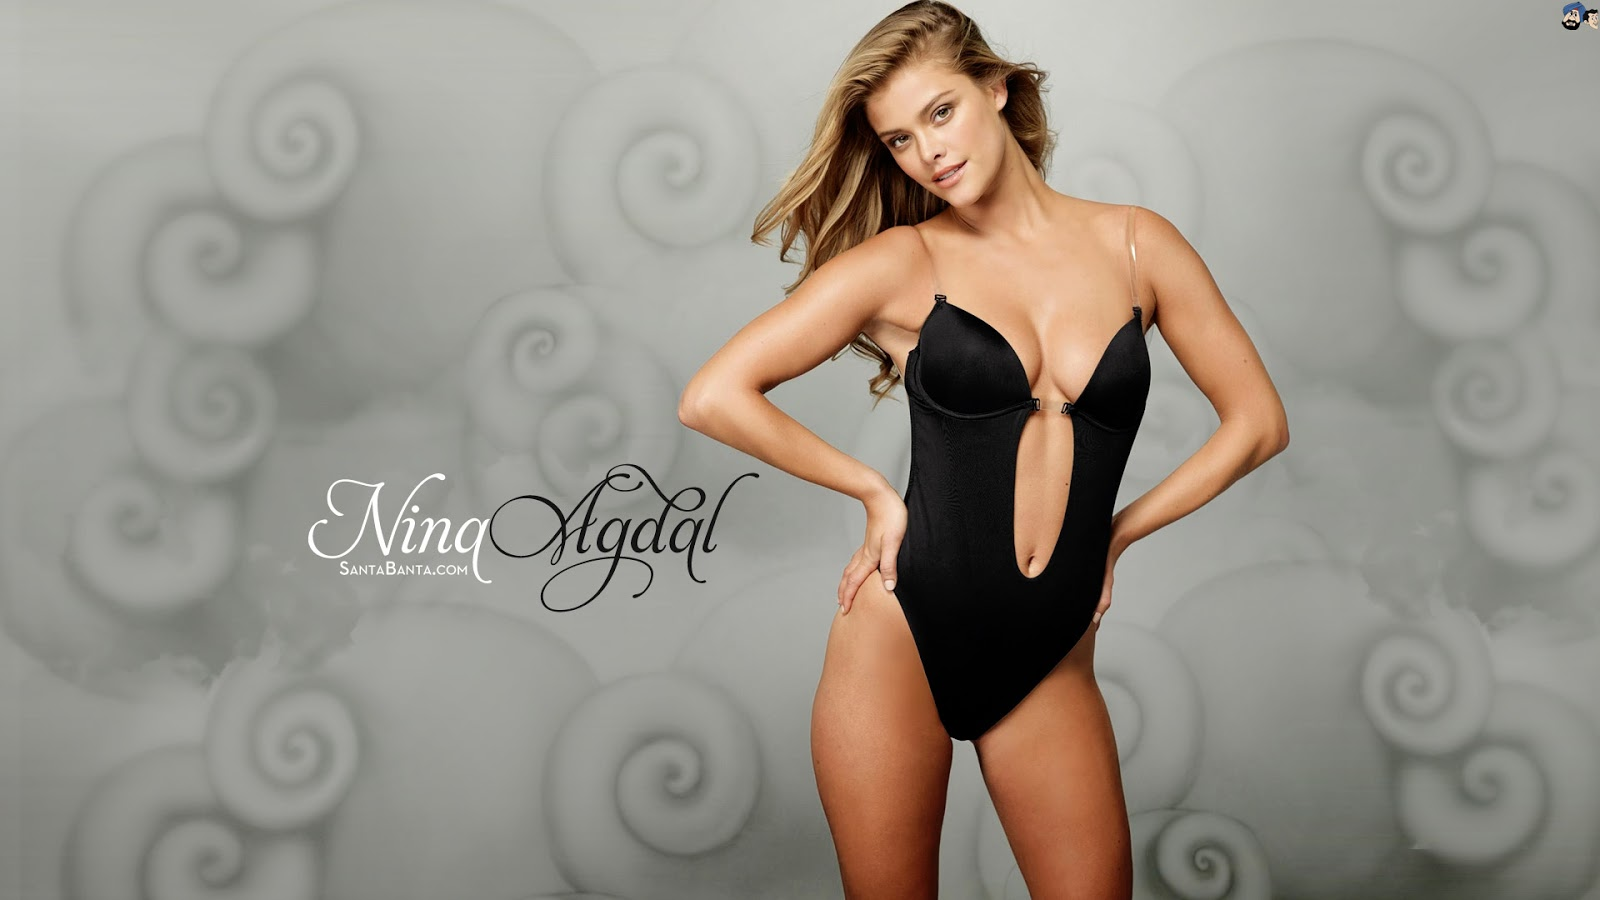 7772ede66 Nina Agdal Esquire Wallpaper